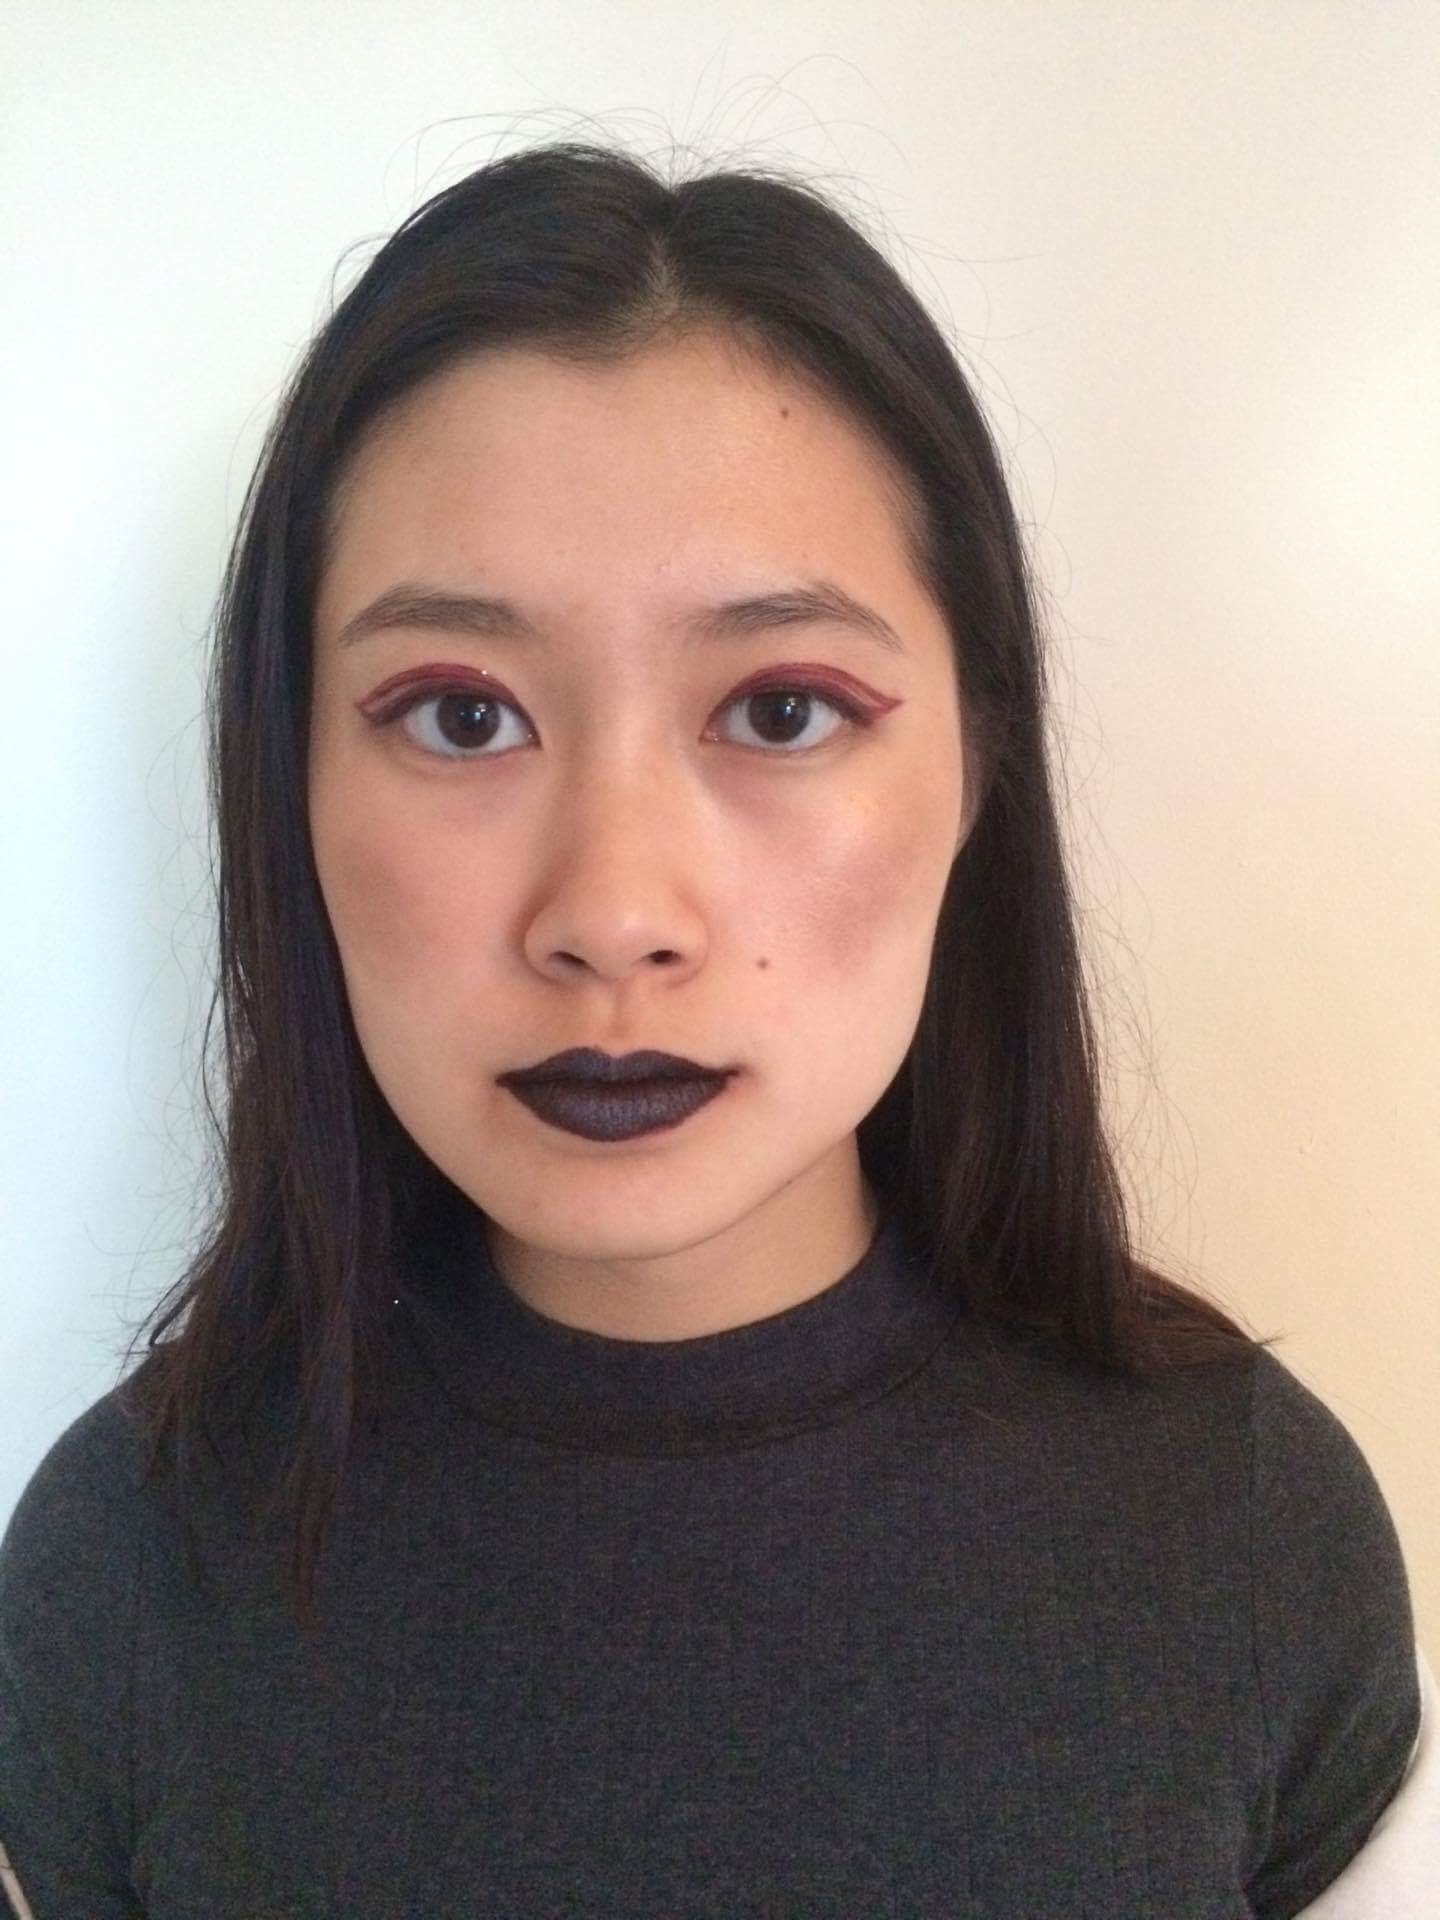 Nicole Ip wears Milk Makeup's Dip Out lip color on her eyes, glitter eyeshadow on her cheeks, and Kat Von D liquid lipstick with the Kat Von D Alchemist shadow ultra-violet on her lips.